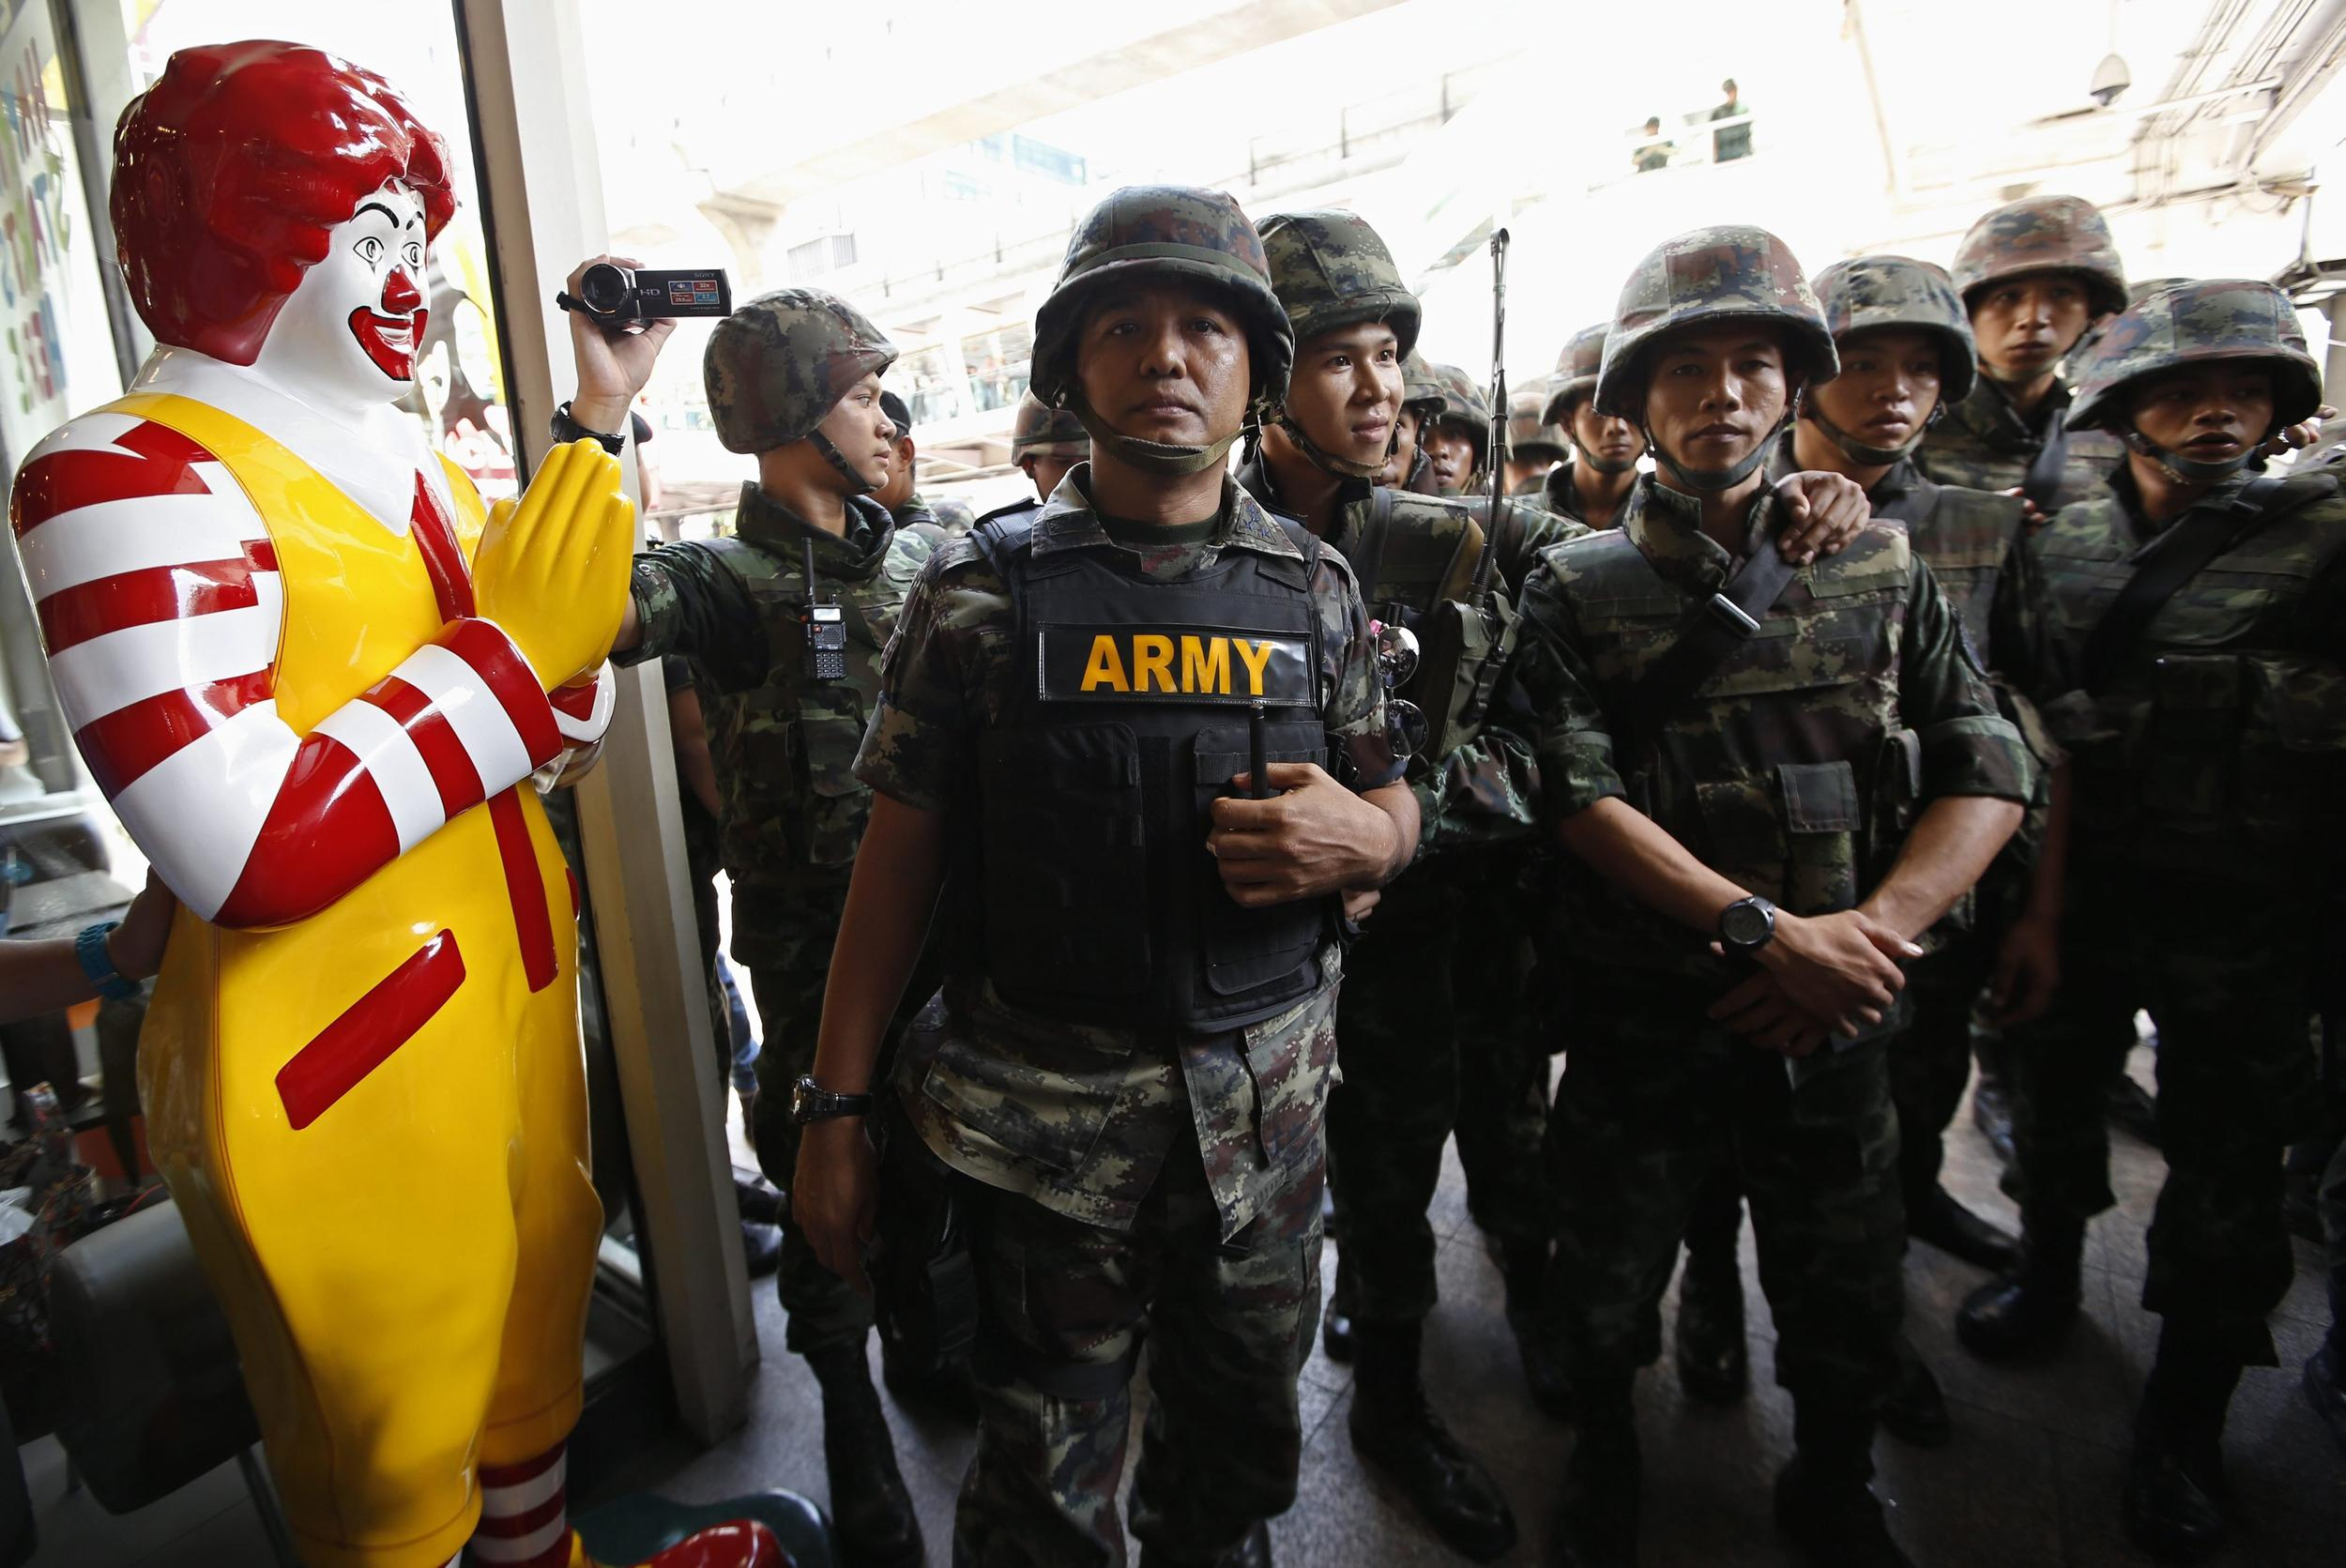 McDonald's famous golden arches have become part of the iconography of anti-coup protests in Thailand.